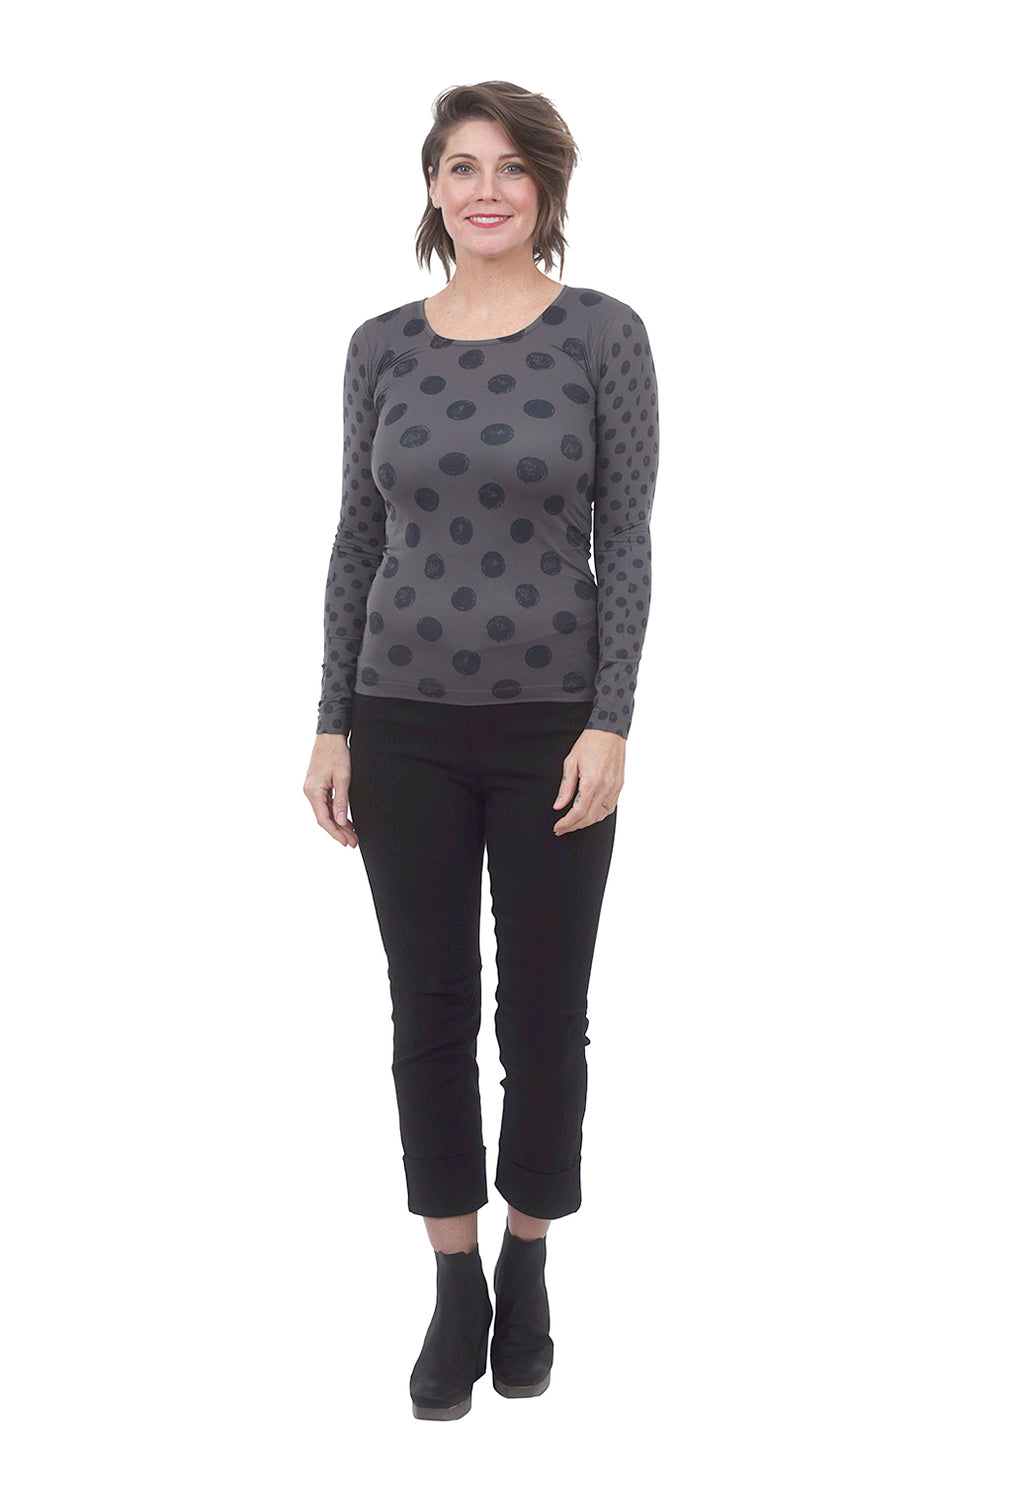 AMB Designs Crew Neck Layer Top, Black Pearl Dot One Size Black Pearl